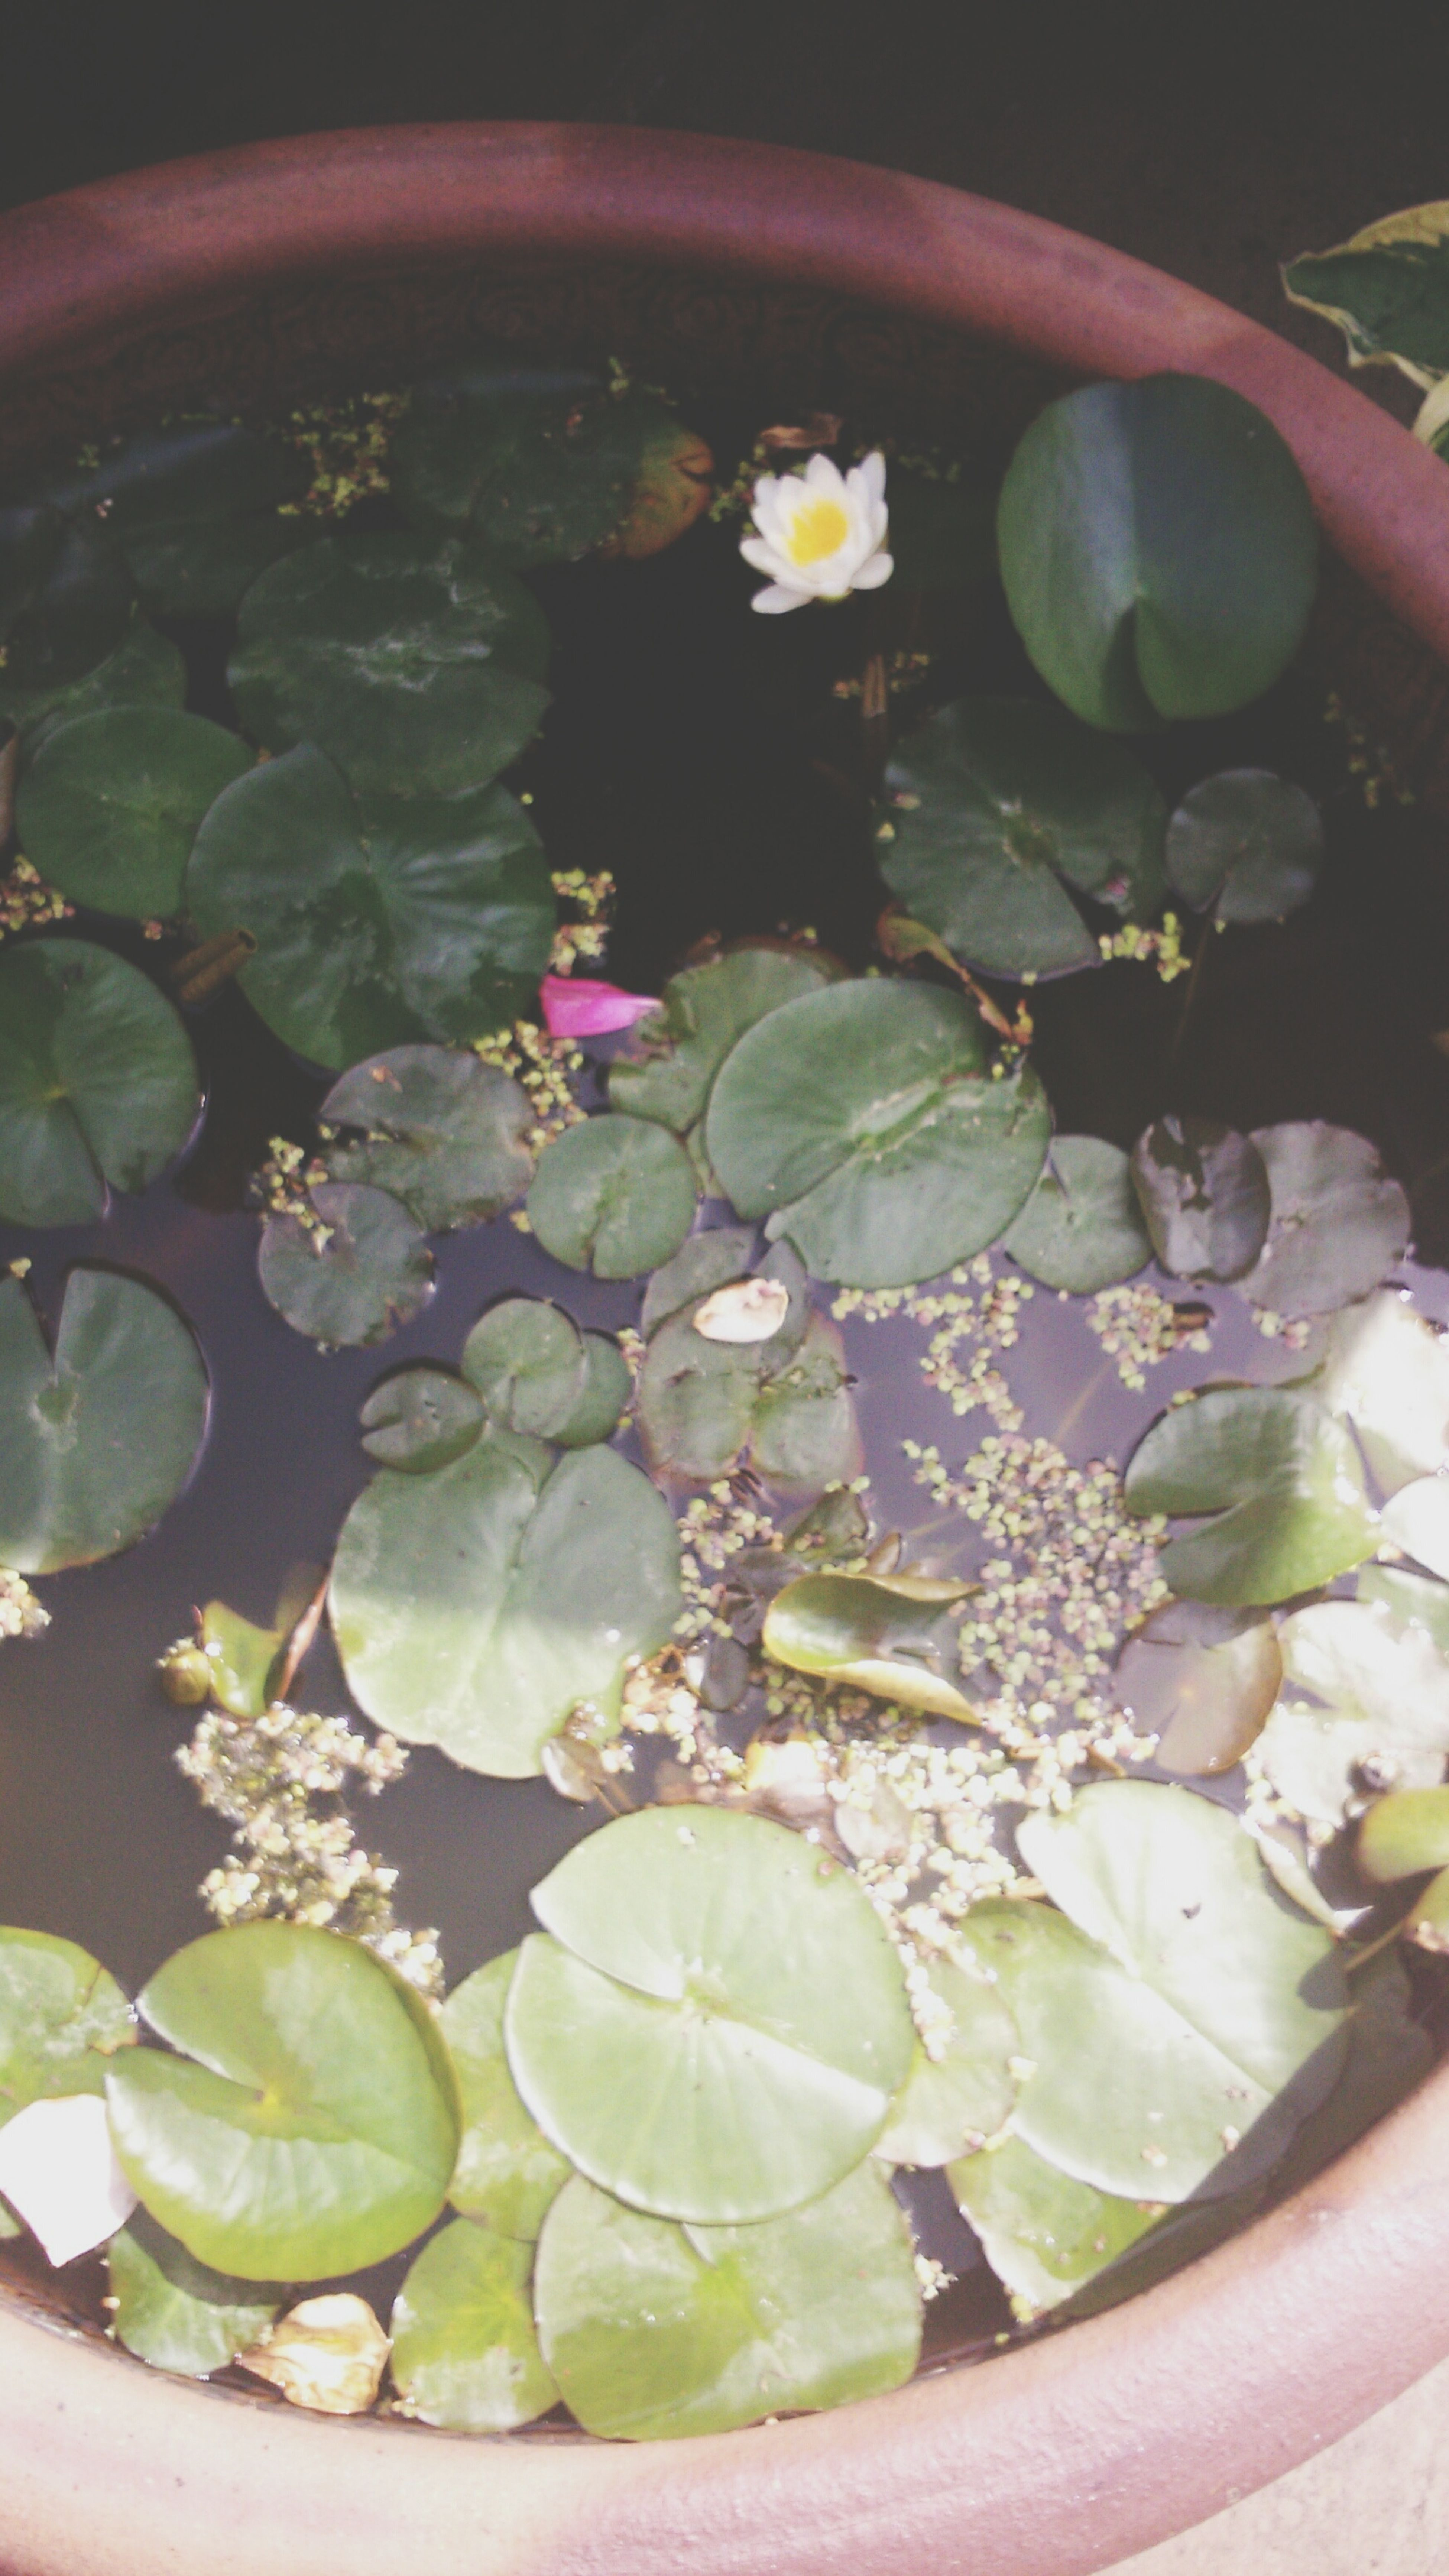 Pond in pot Taking Photos Flower Power water feature Nature_collection Change Your Perspective The Purist (no Edit, No Filter) Day Out